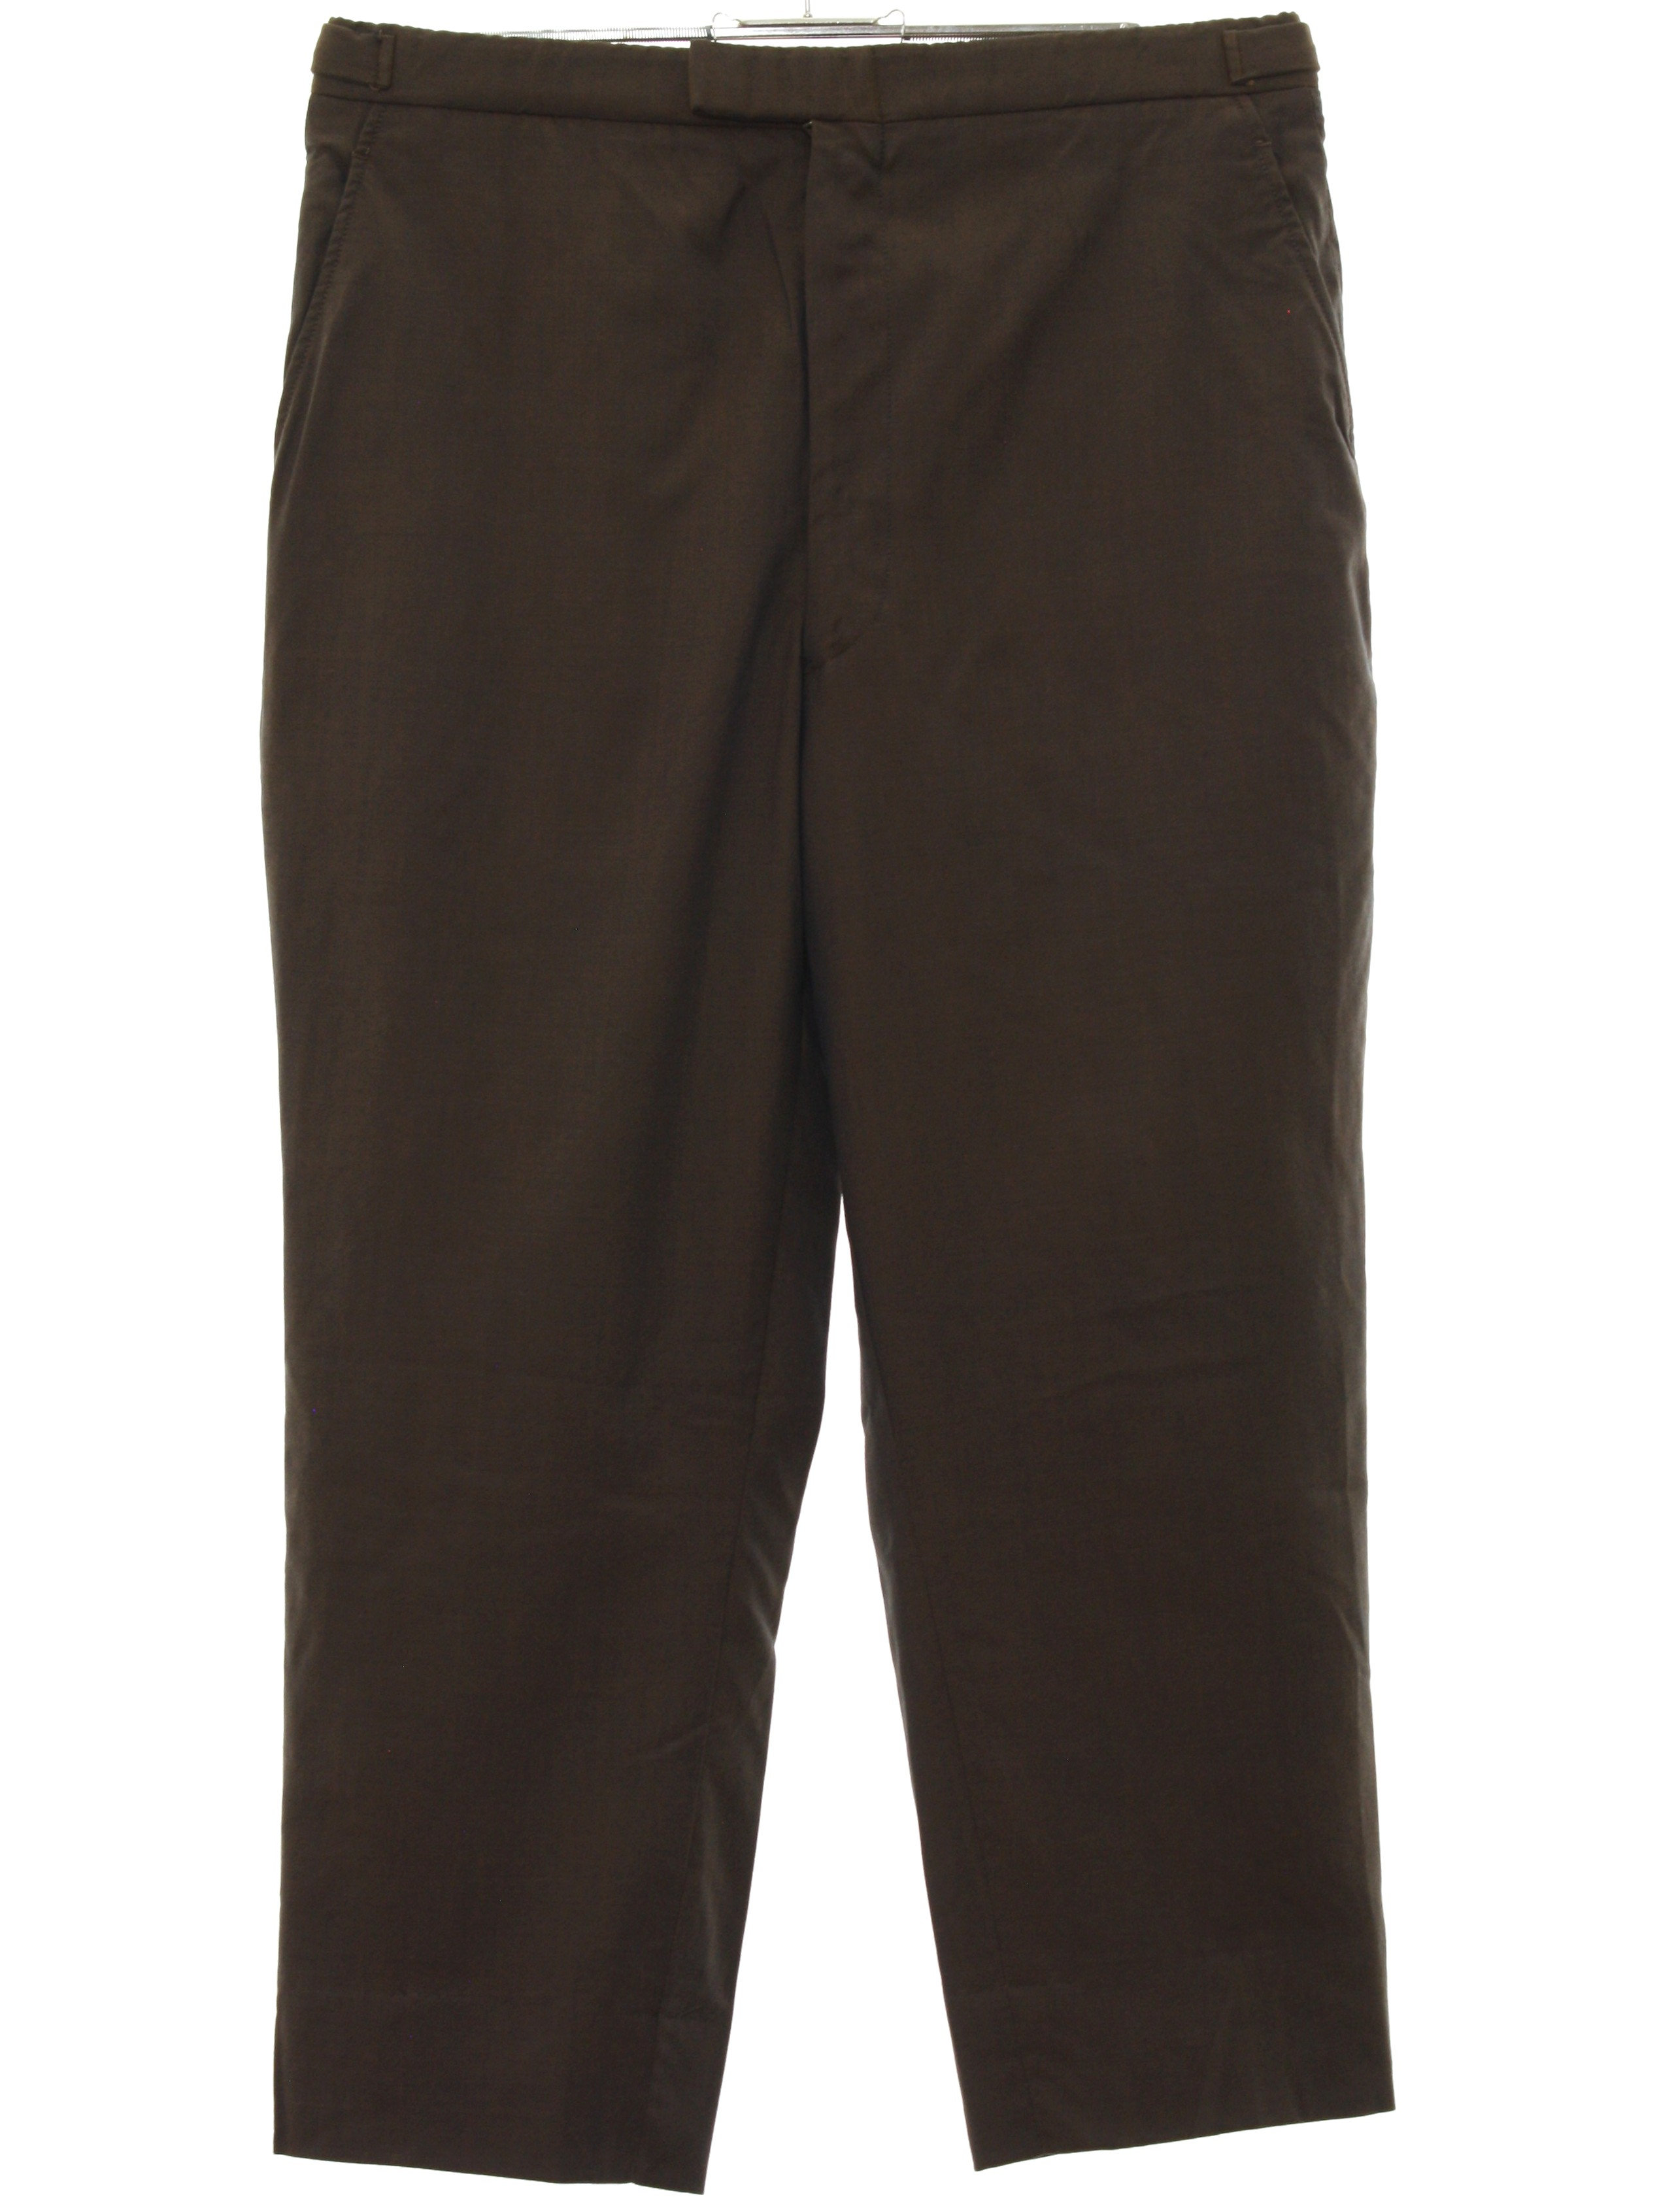 TROUSERS - Bermuda shorts Care Label